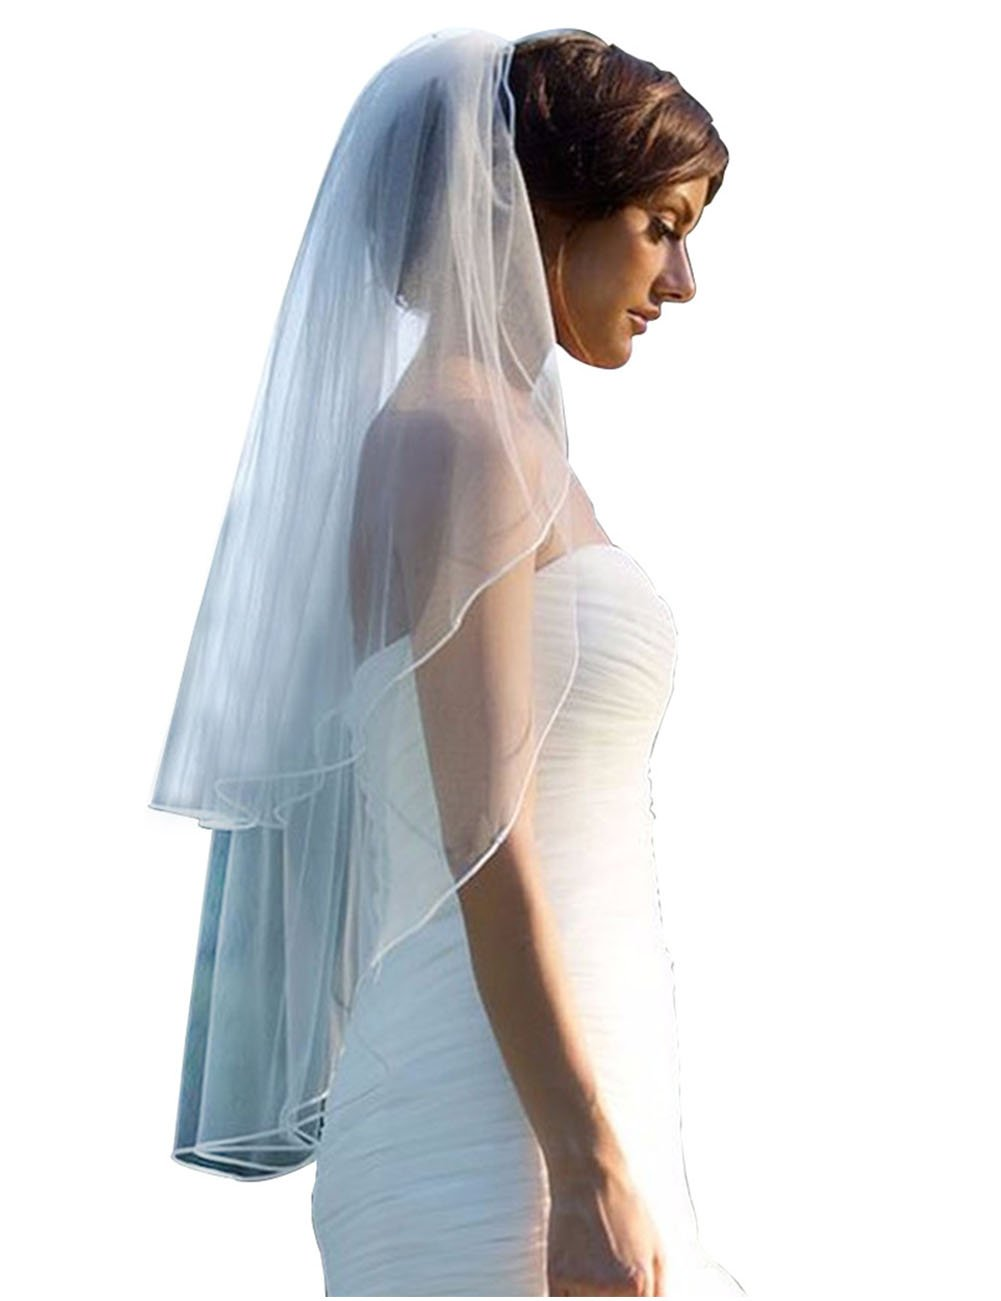 GRACIN Women's 2 Tier Elegant White Bridal Tulle Wedding Veil with Comb (Plastic comb, White)